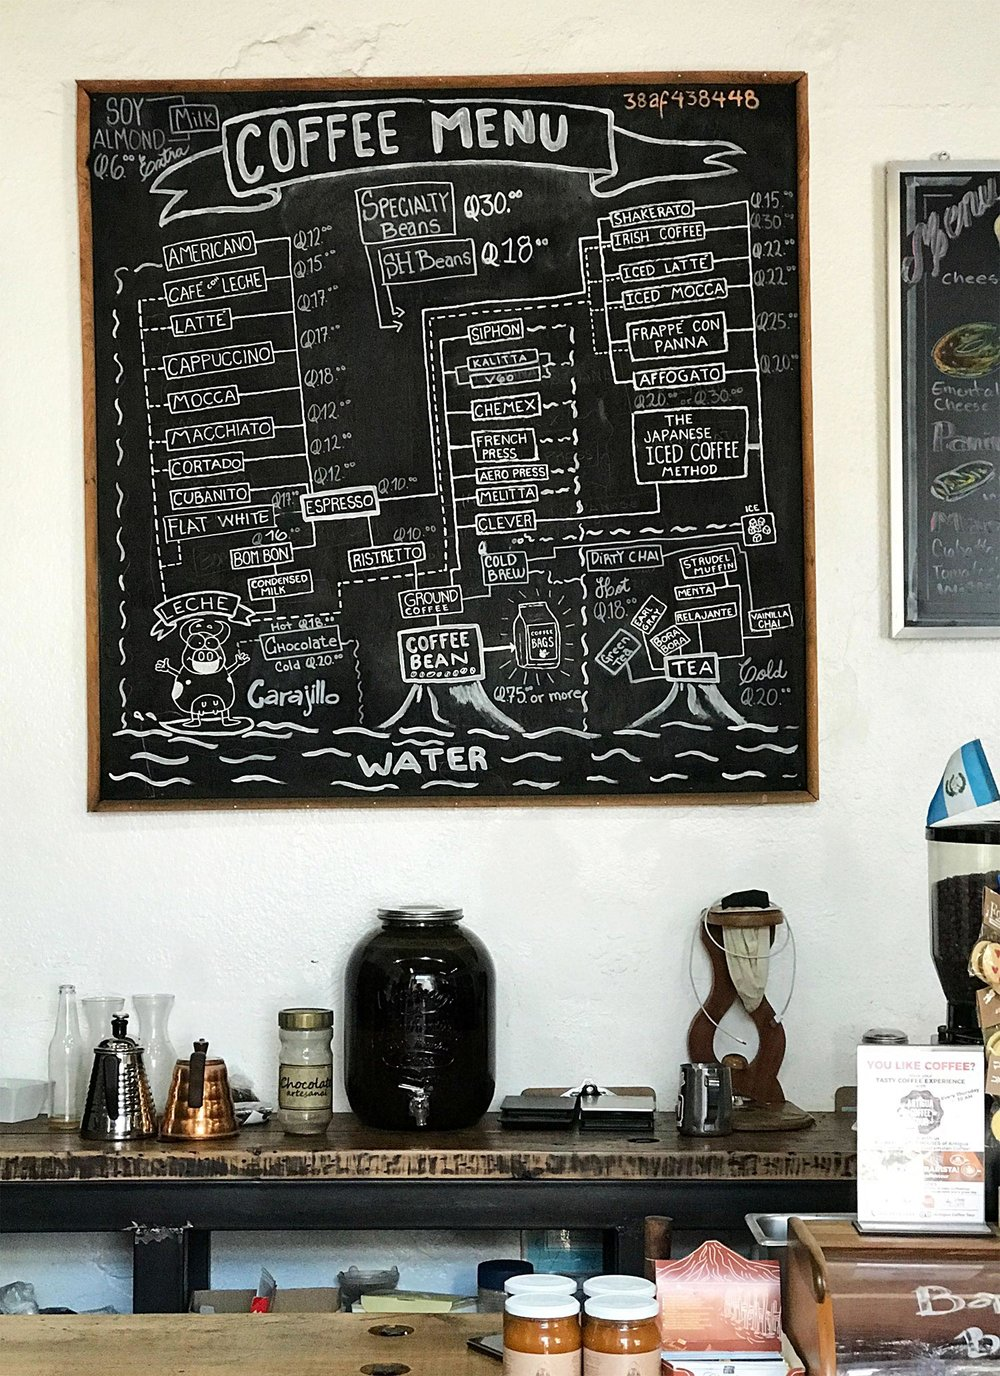 coffee menu in Antigua, Guatemala